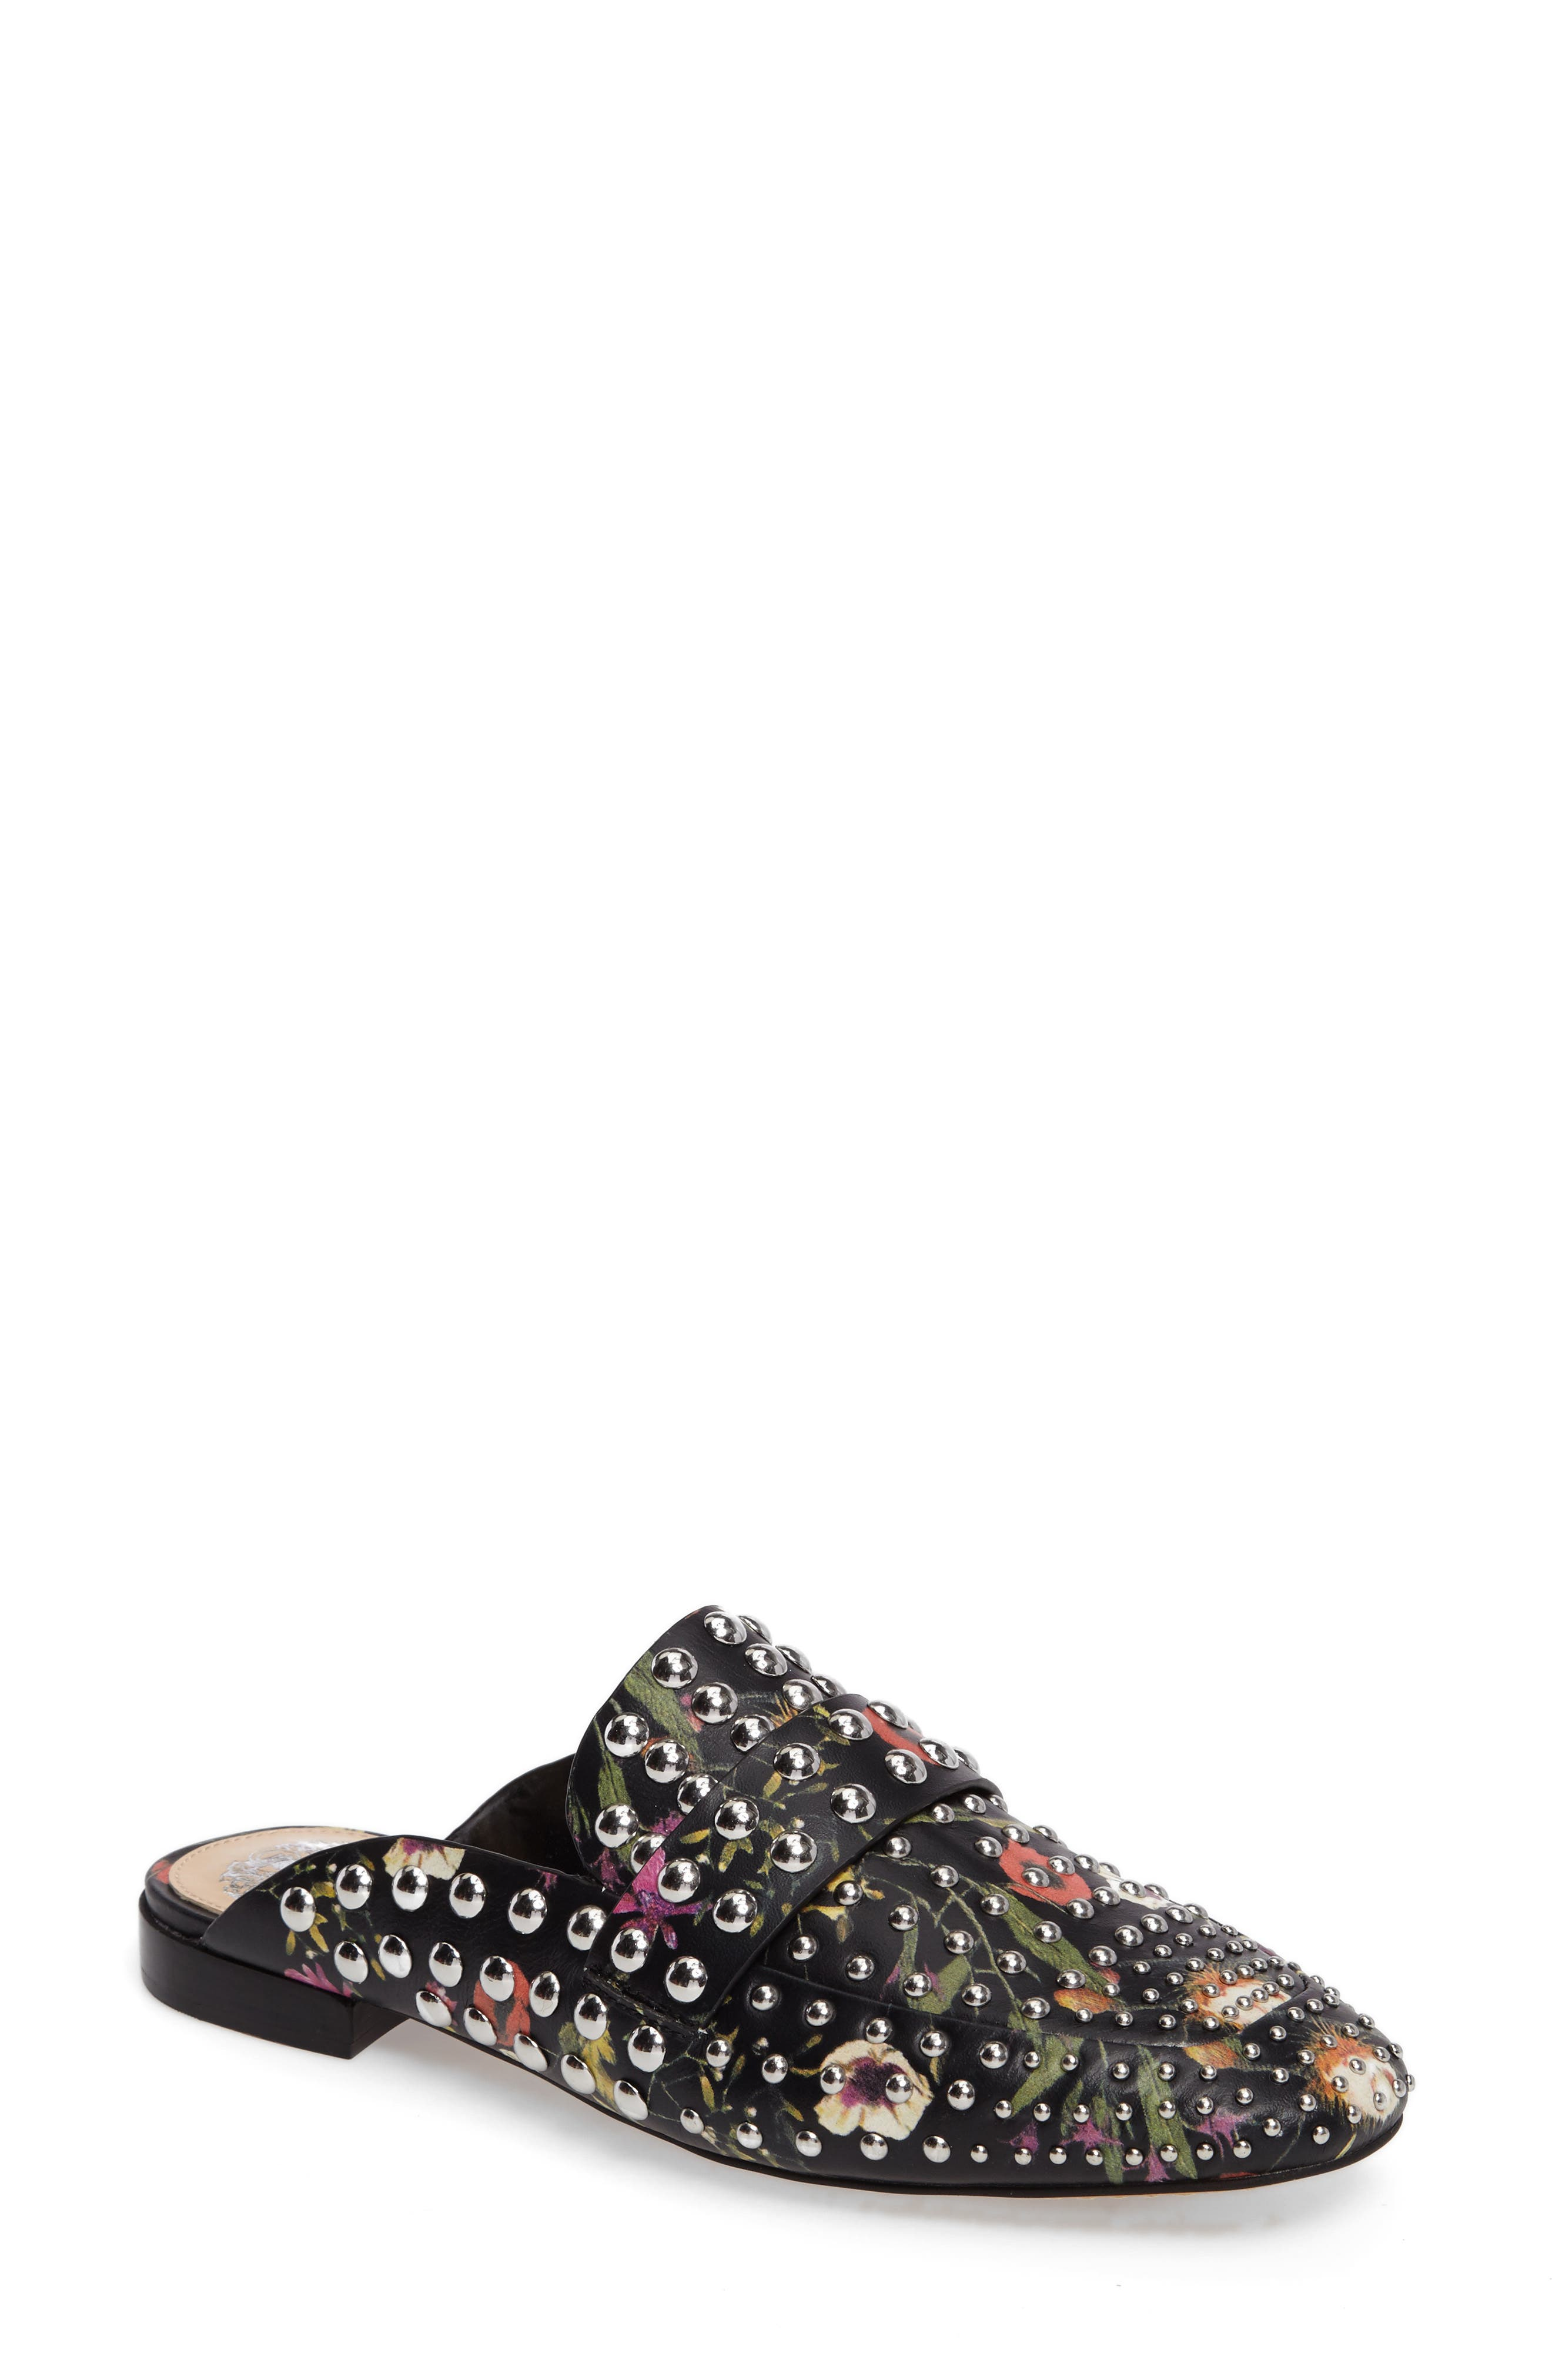 Vince Camuto Sessa Studded Loafer Mule (Women)